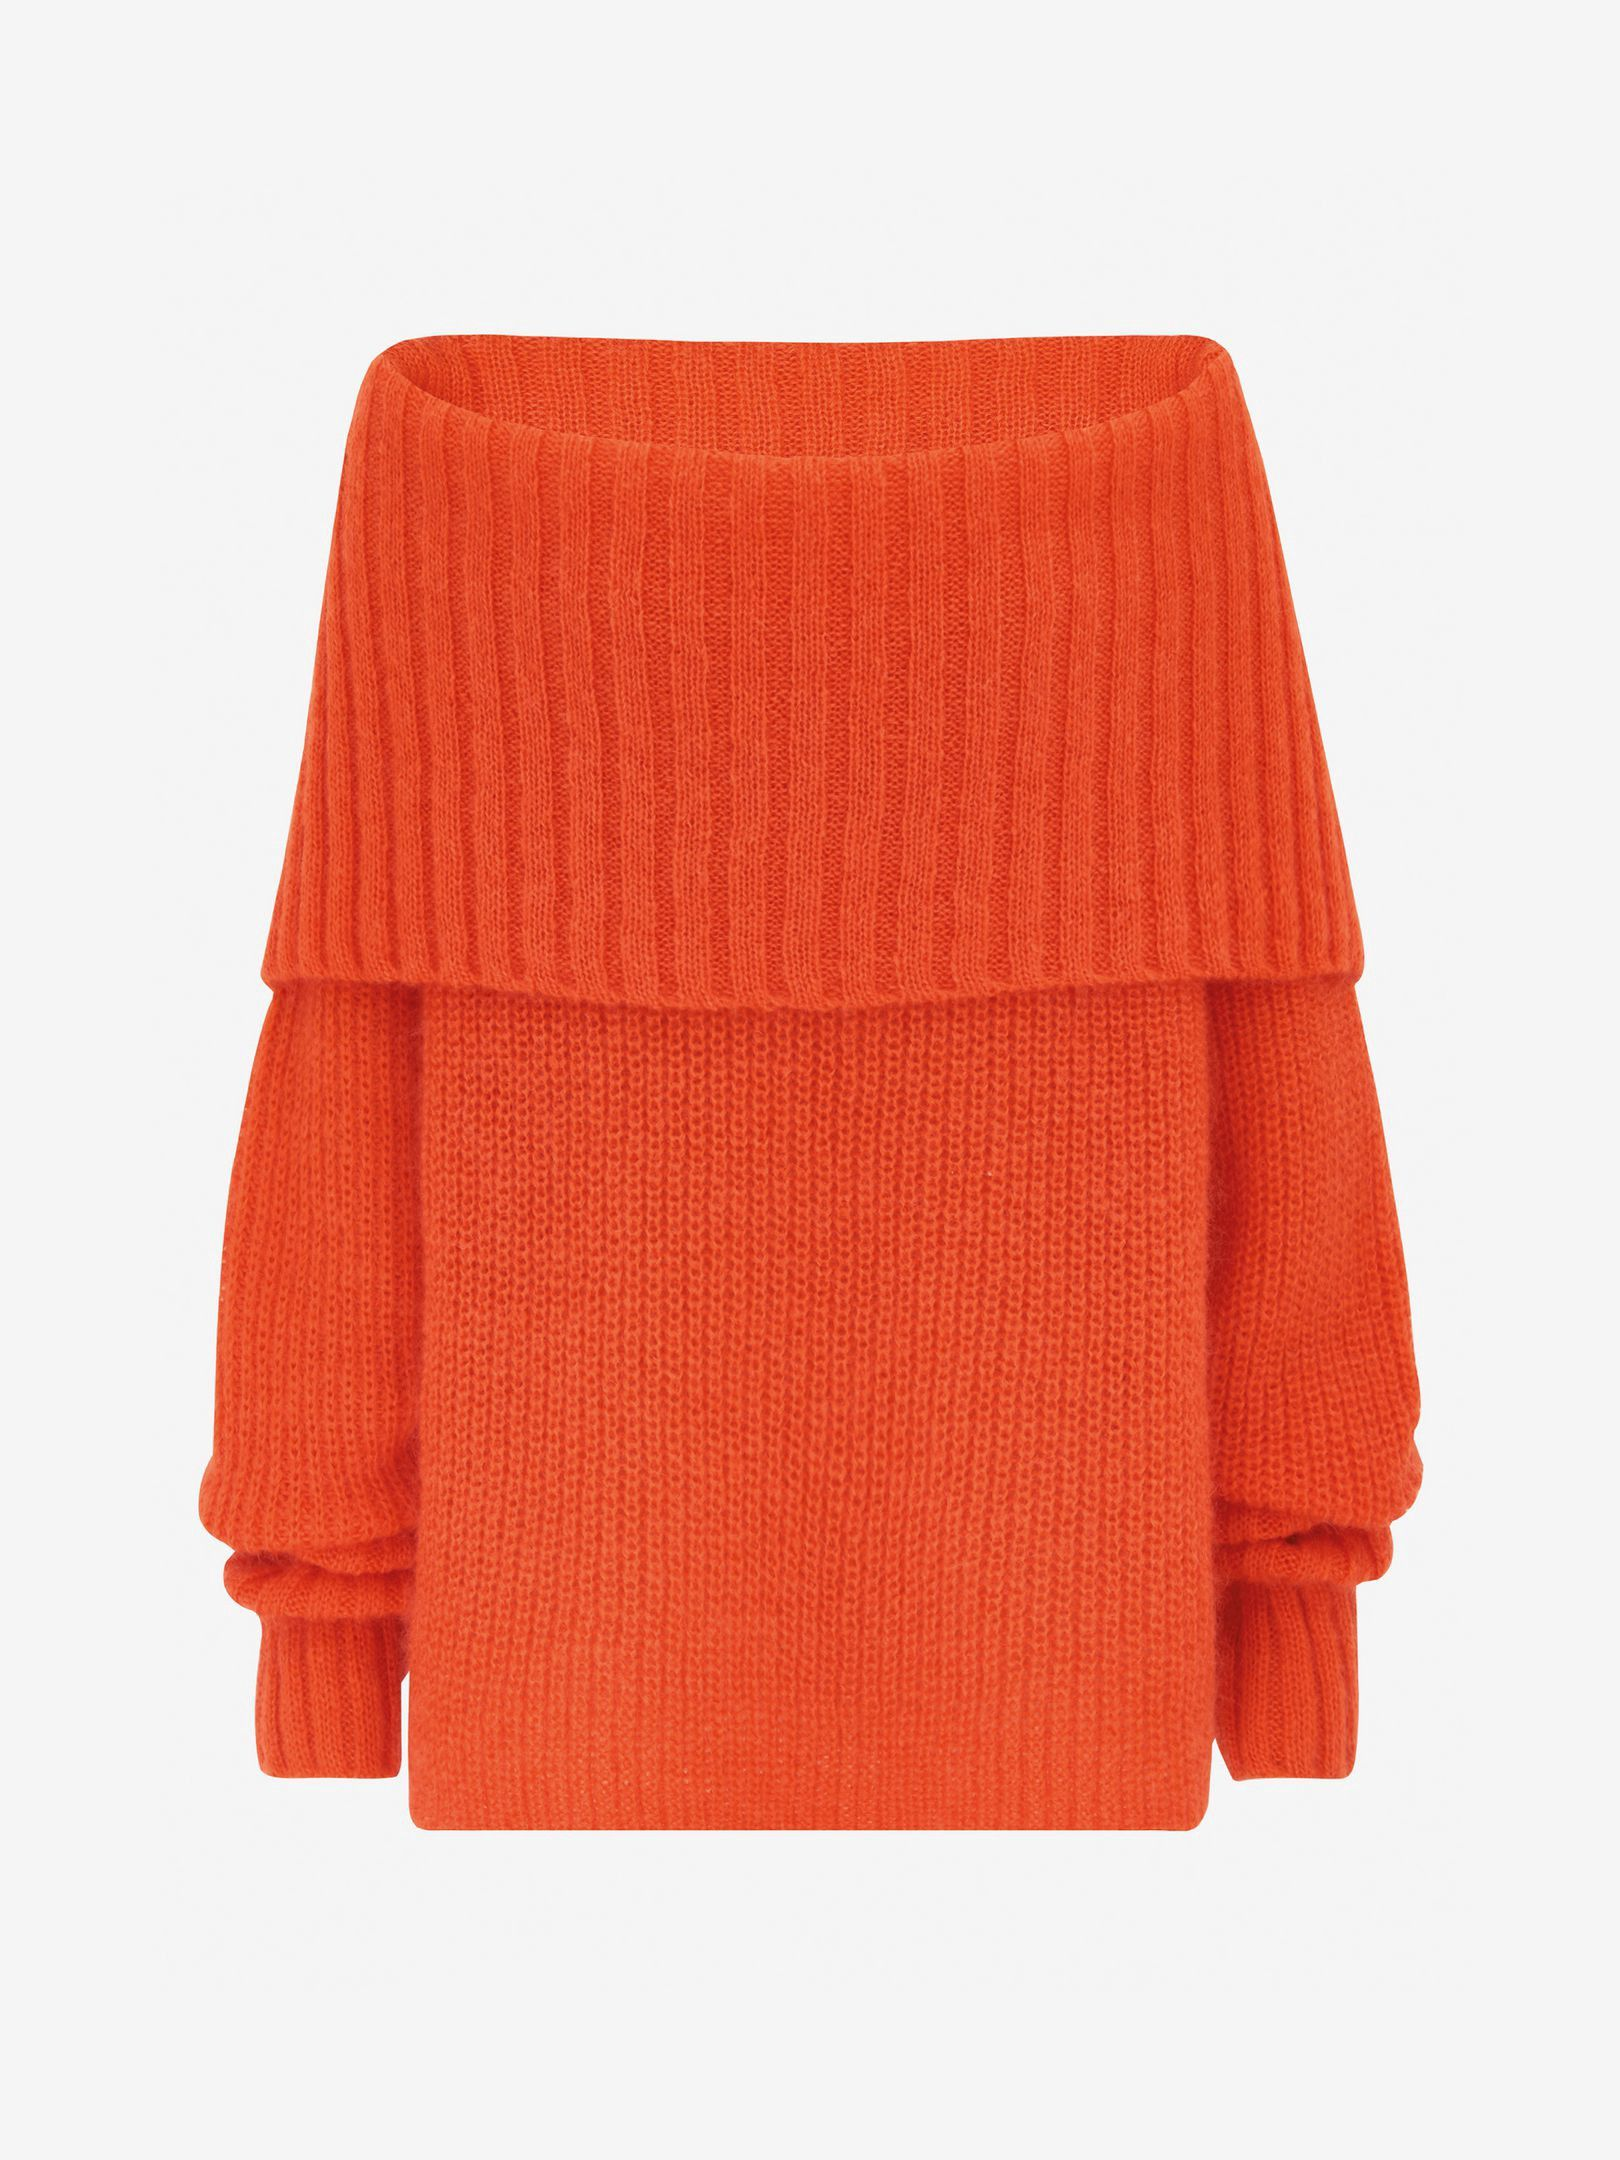 Cowl Neck Sweater By Mcq In 2018 Products Pinterest Cowl Neck